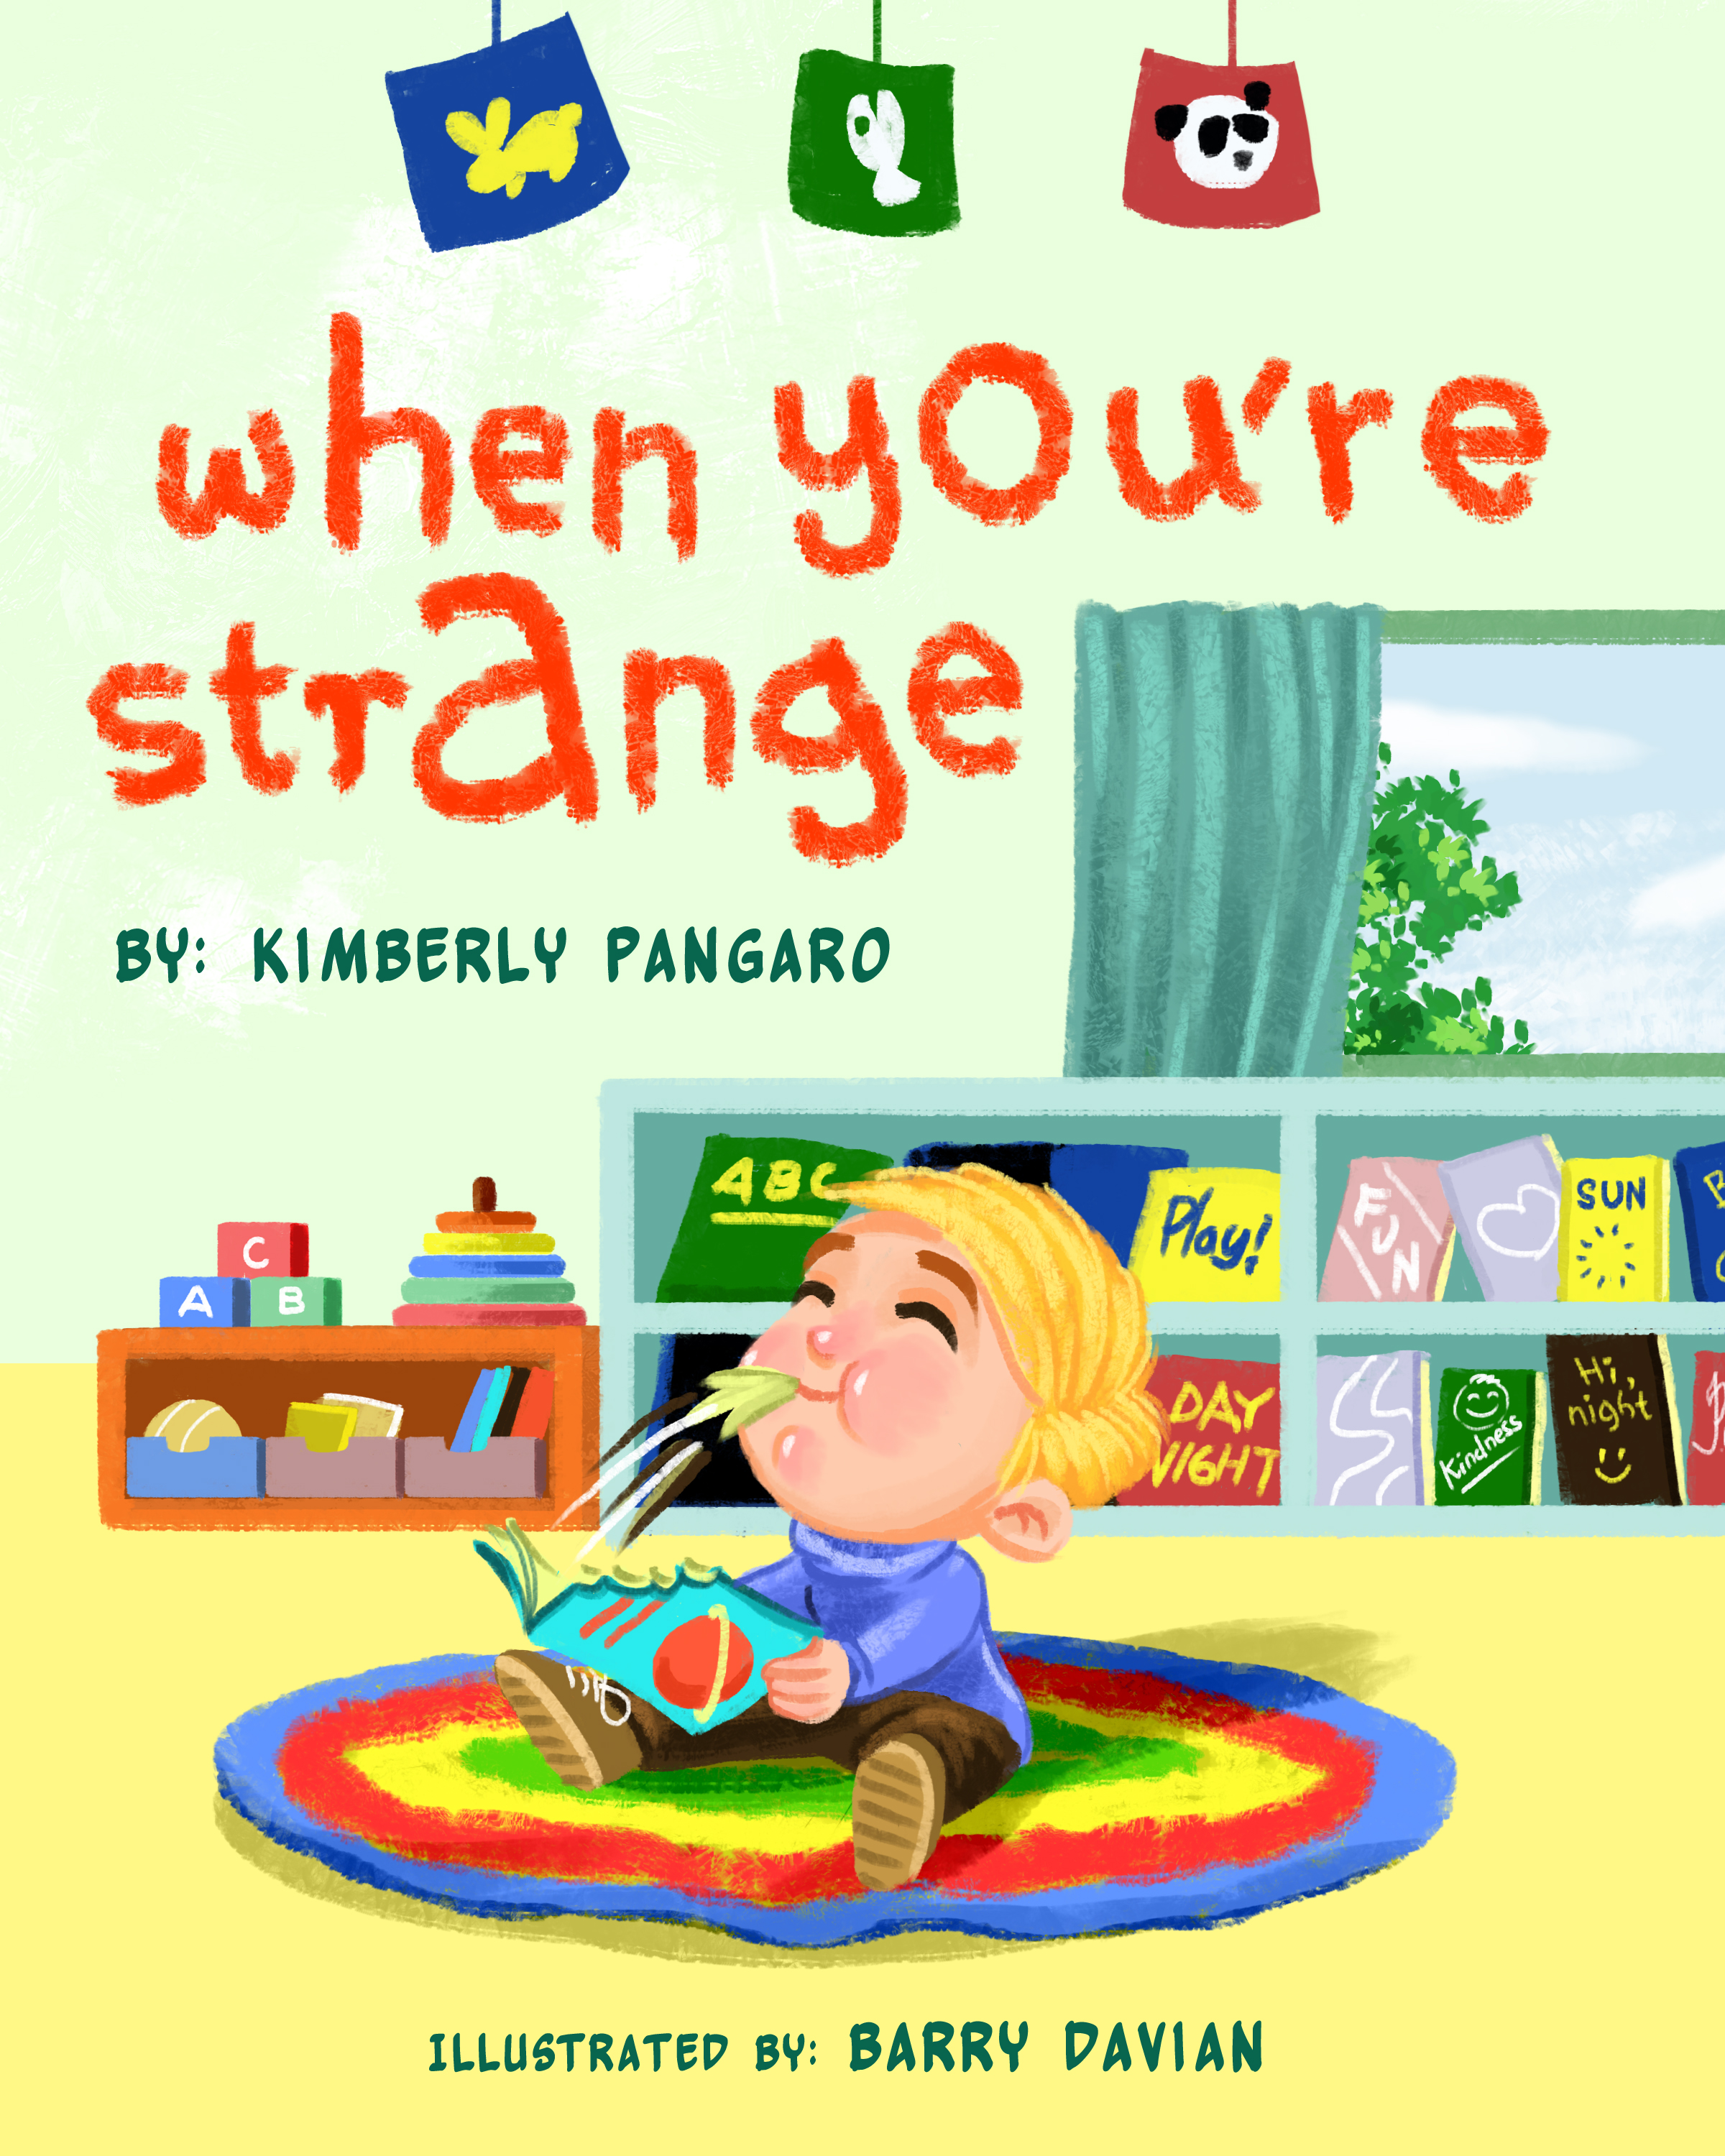 Kimberly Pangaro's Latest Children's Picture Book Celebrates the Uniqueness in Every Child